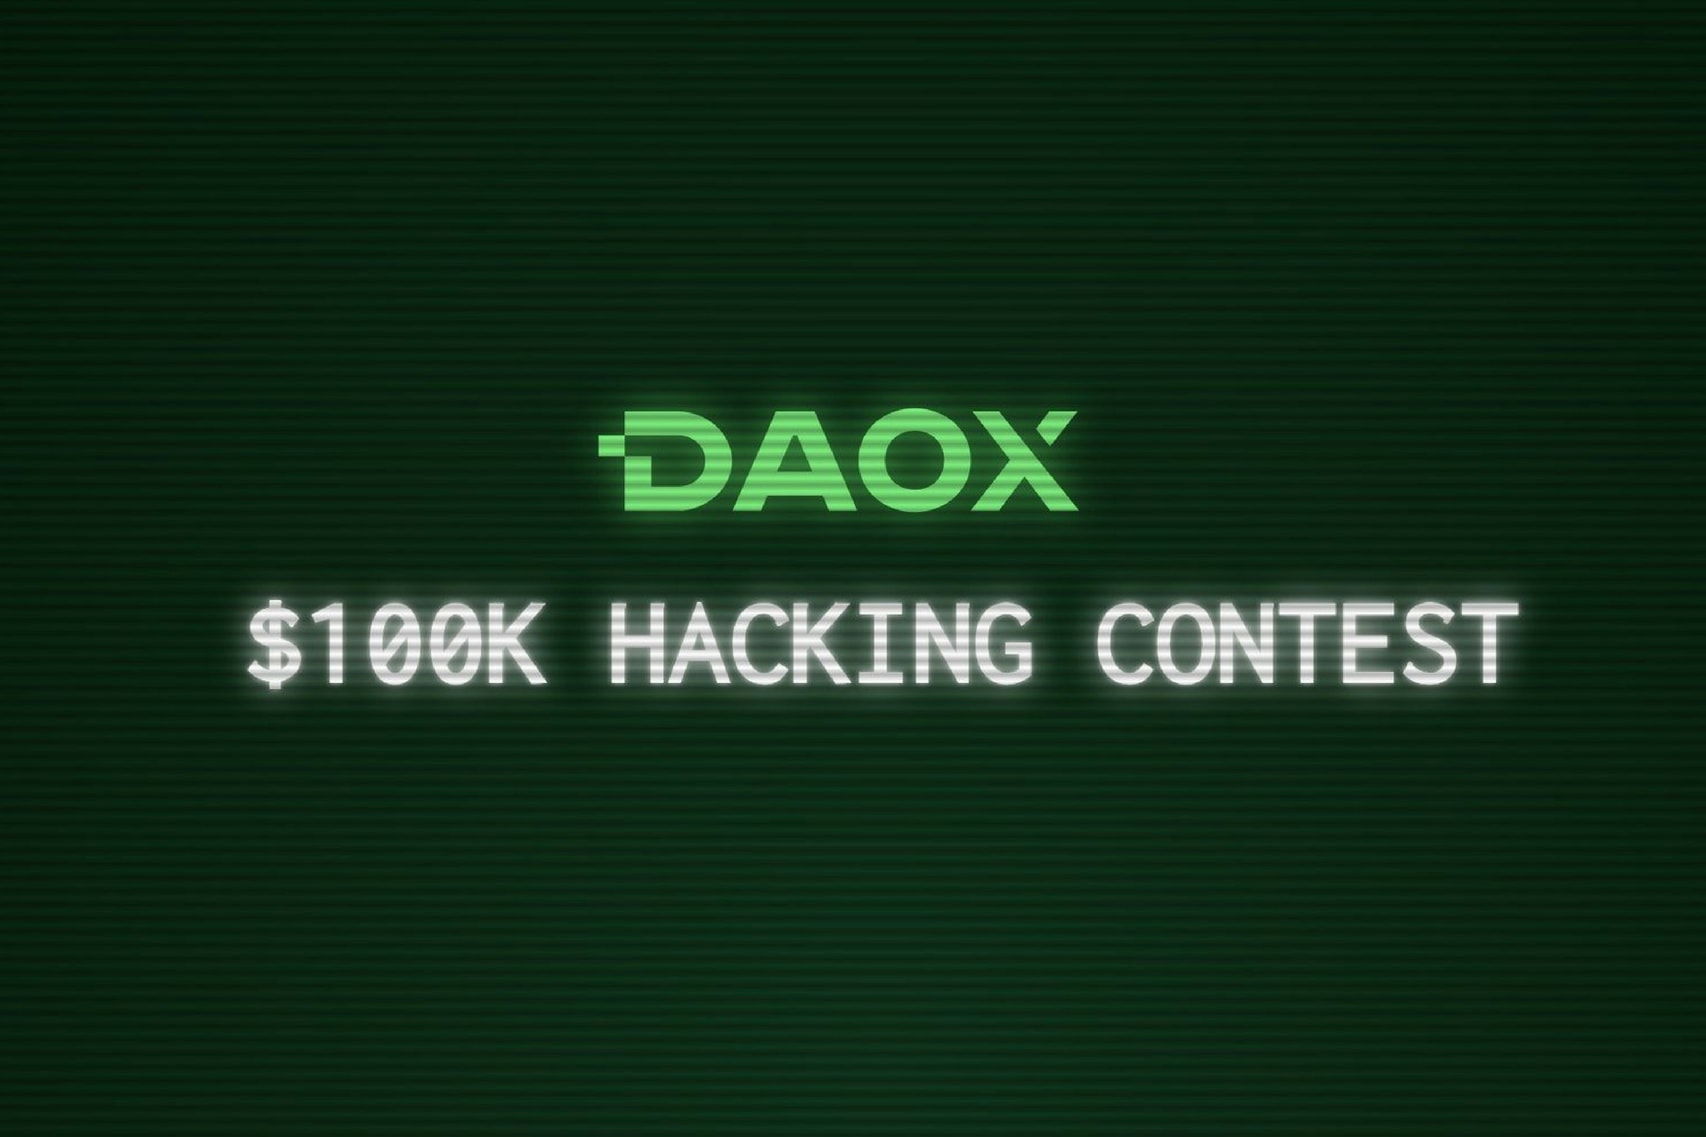 daox_hackingcontest